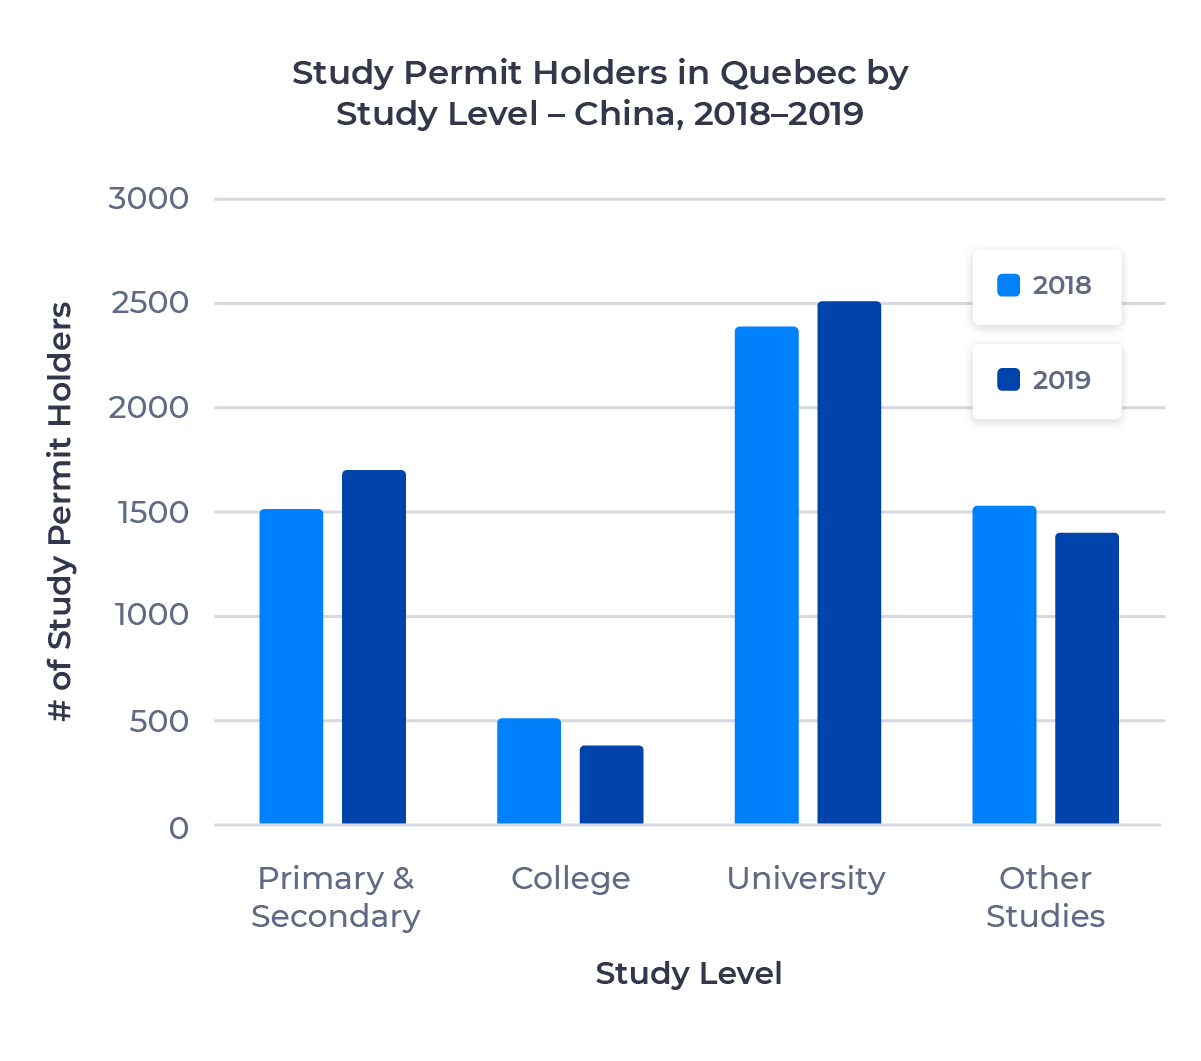 Bar chart showing the number of study permit holders in Quebec from China by study level. Described in detail below.